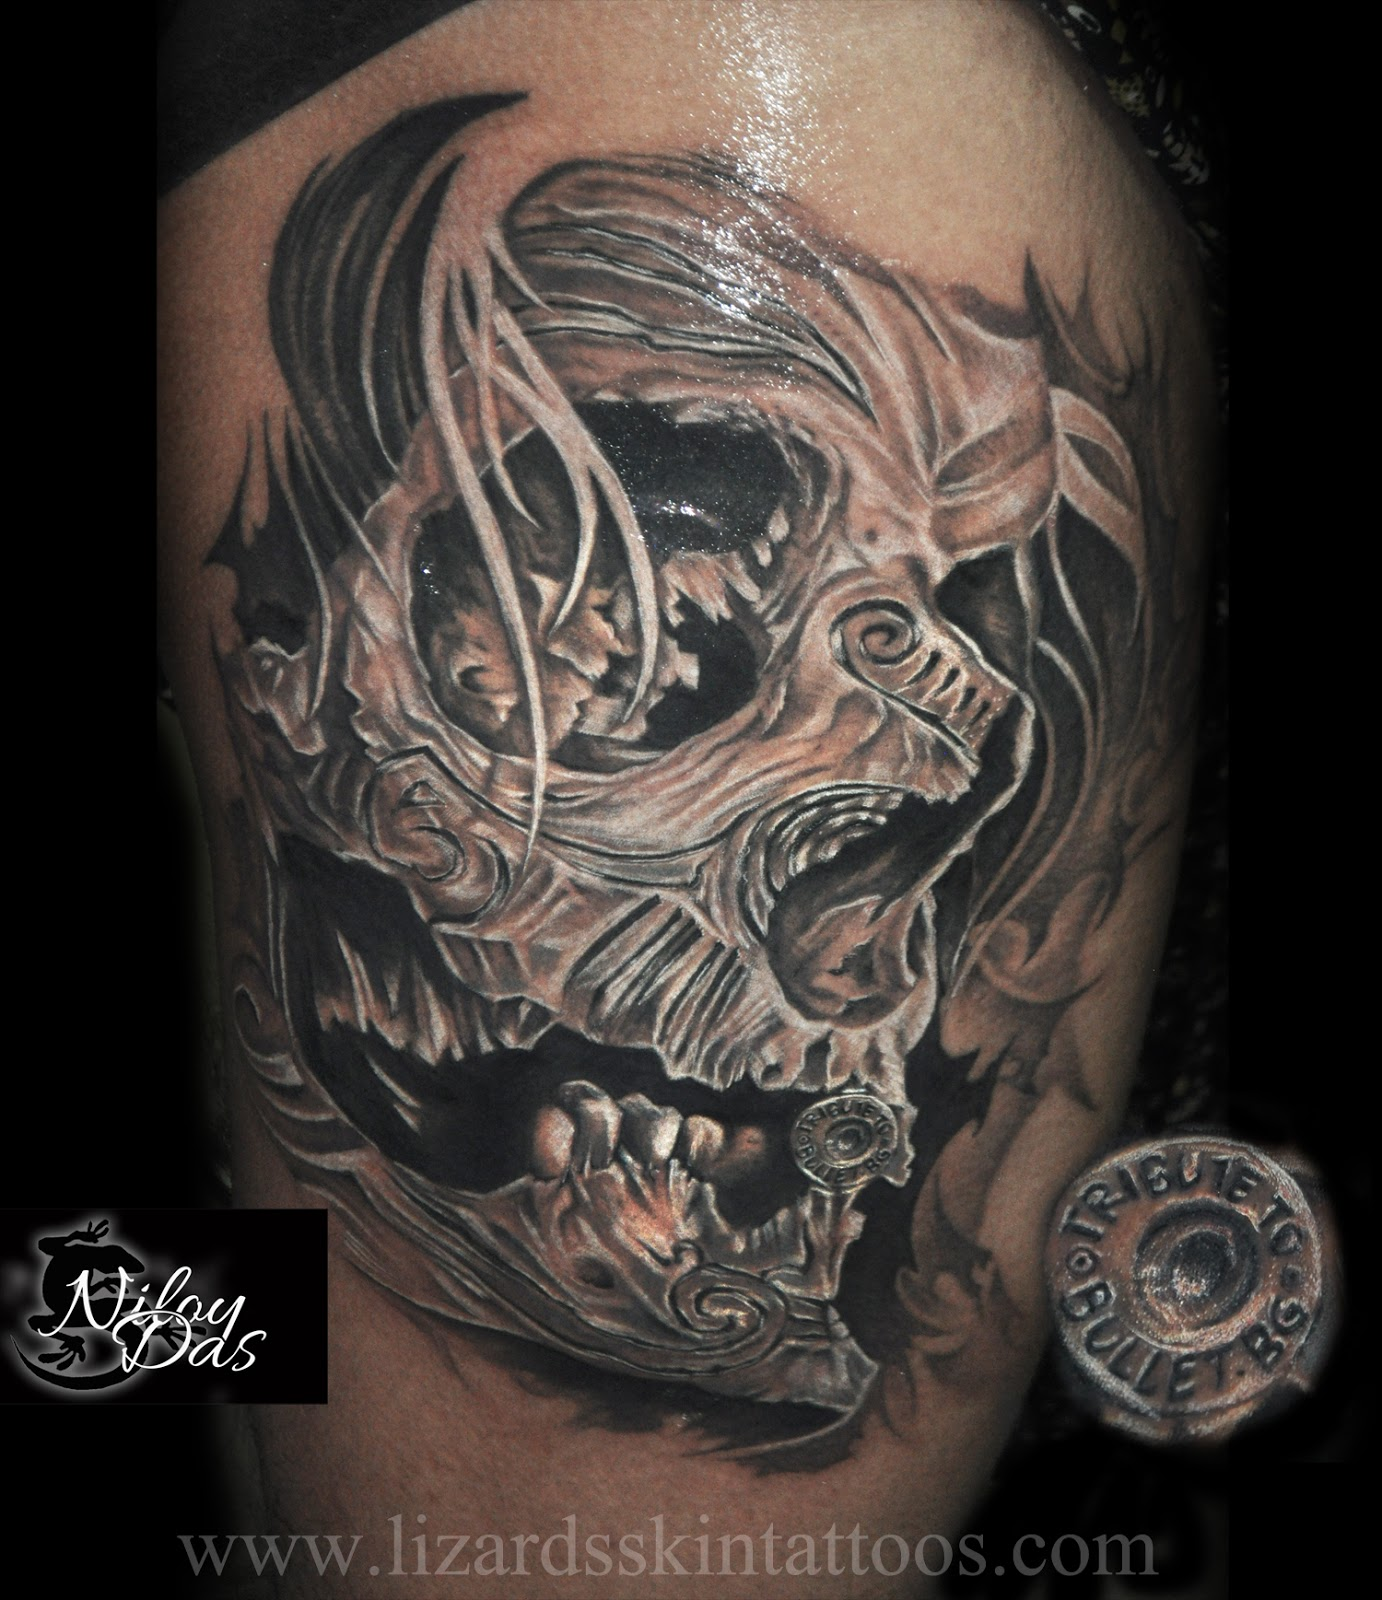 Lizard S Skin Tattoos Skull Tattoo And Its A Tribute To Ideas And Designs